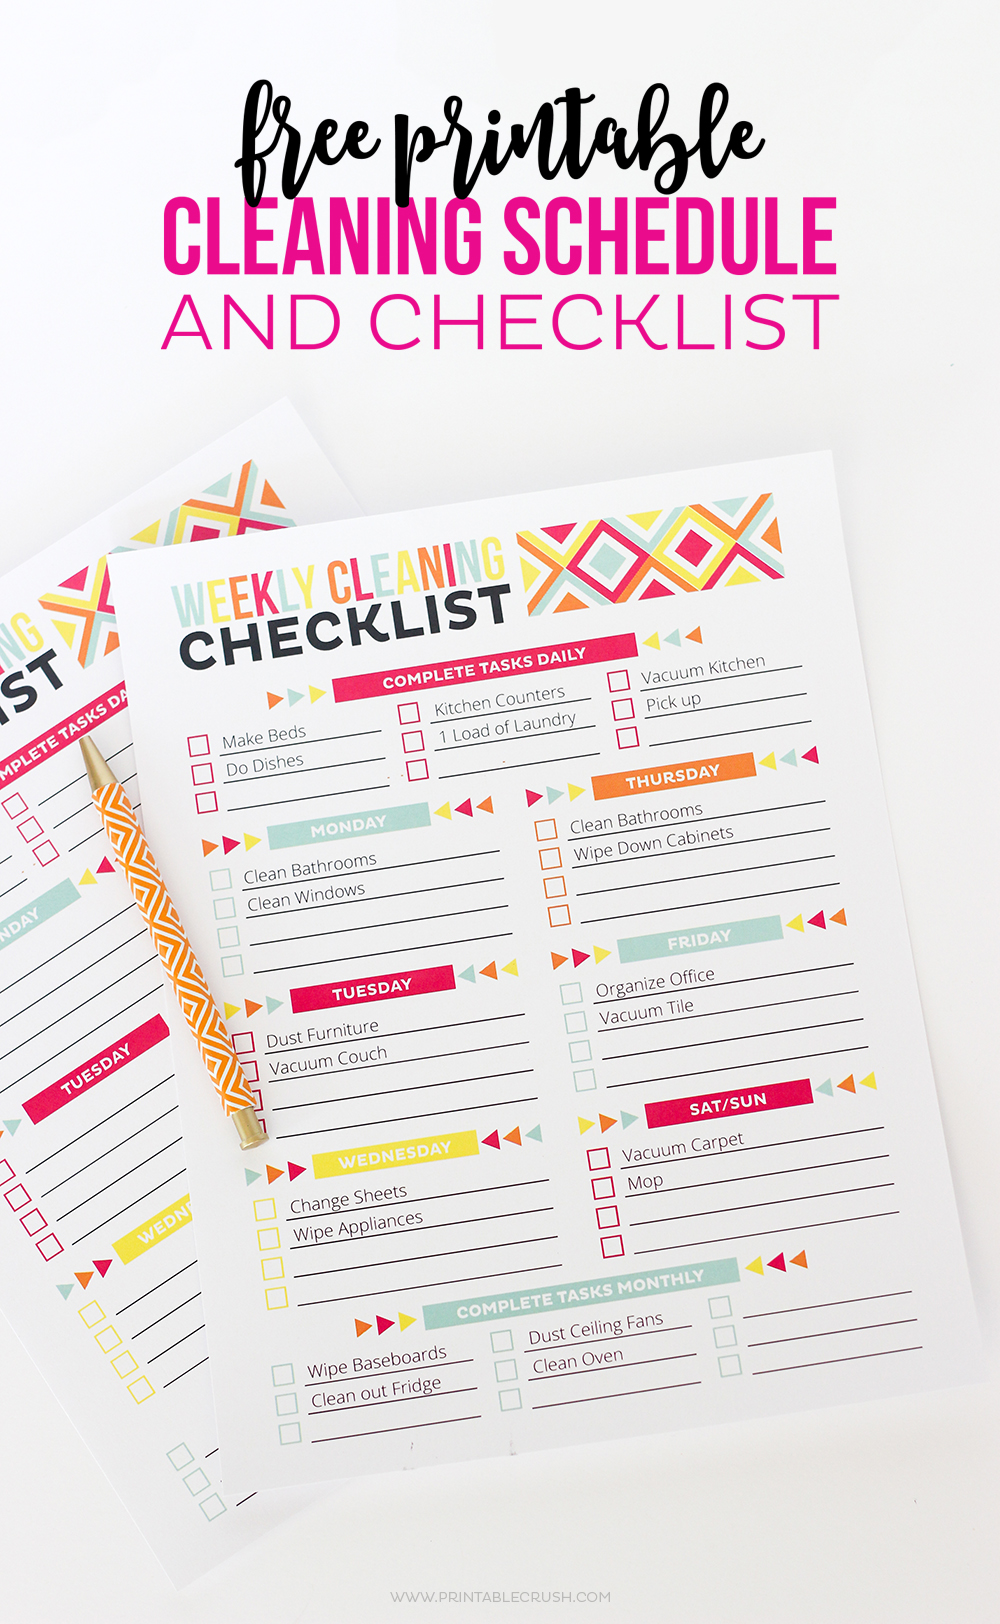 photo regarding Cleaning Supplies List Printable titled Cost-free Printable Cleansing Plan and Record - Printable Crush